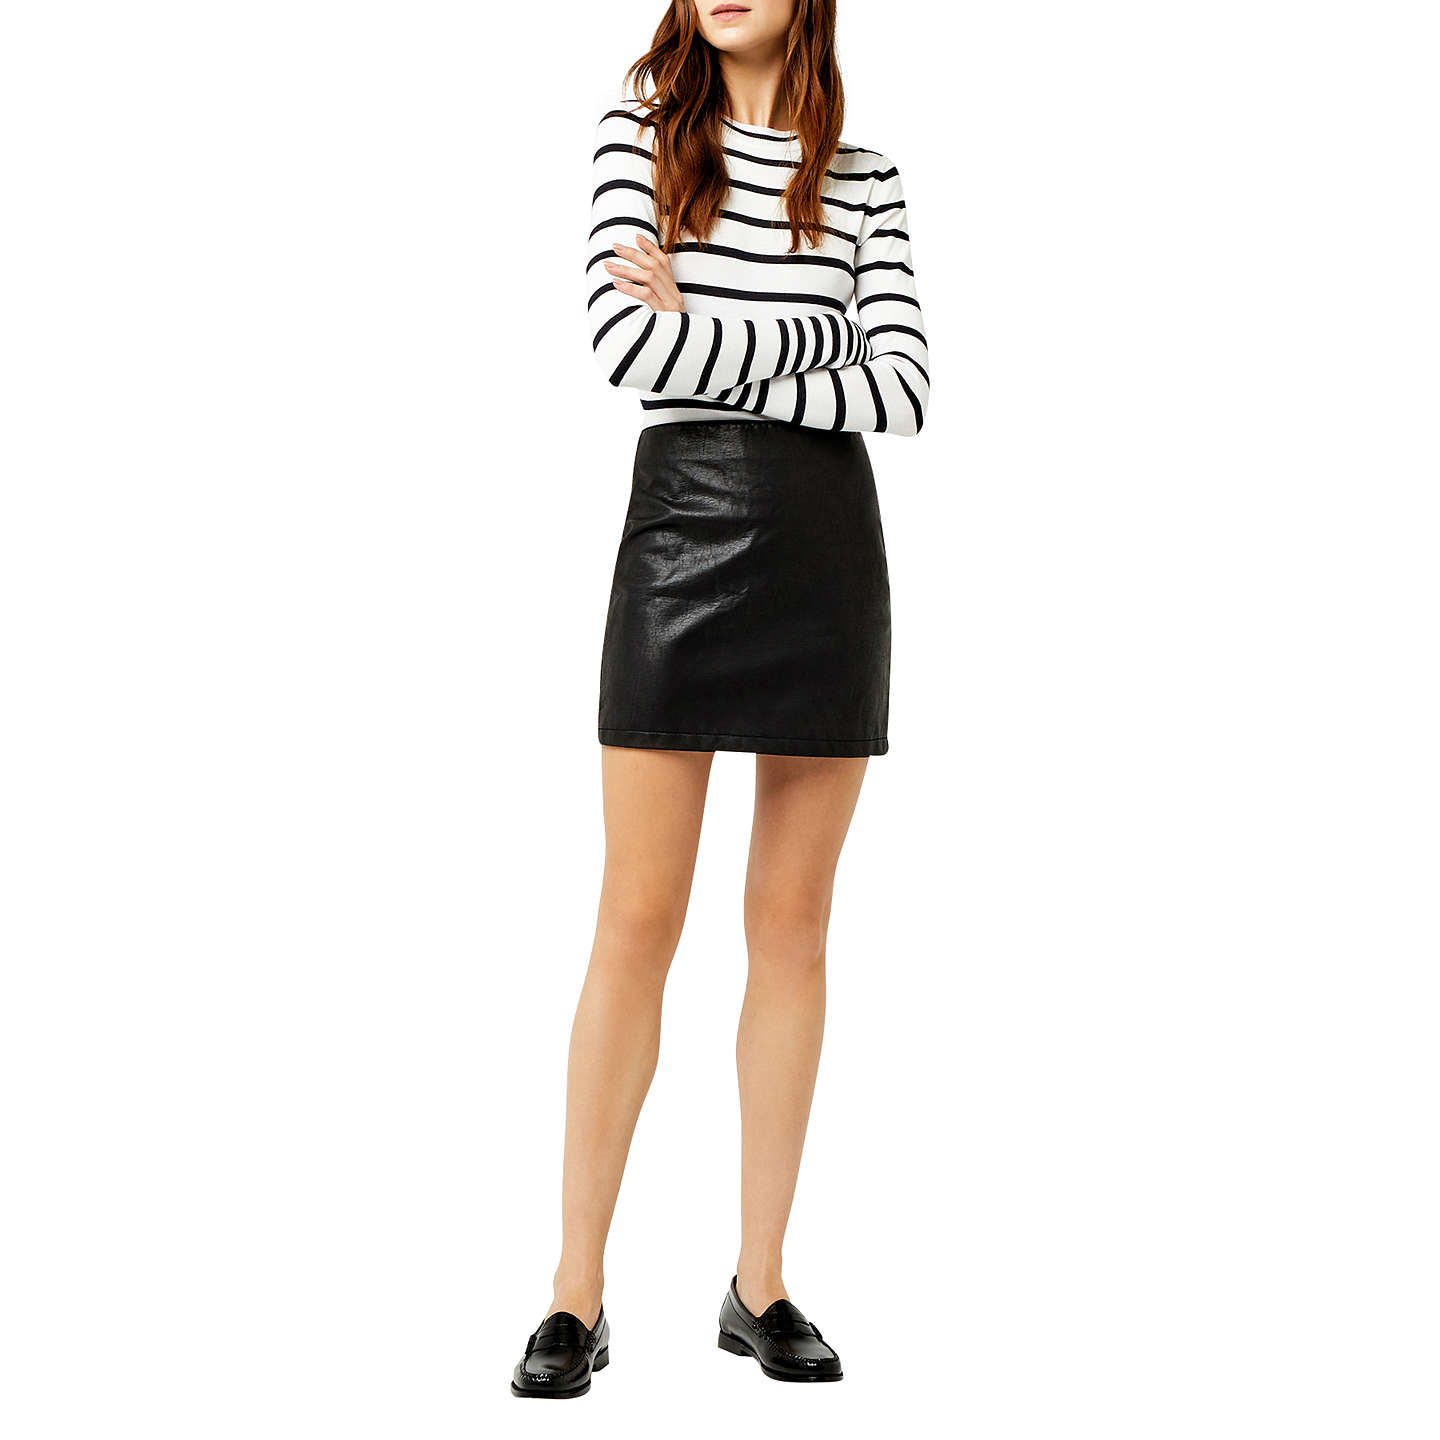 BuyWarehouse Faux Leather Mini Skirt, Black, 6 Online at johnlewis.com